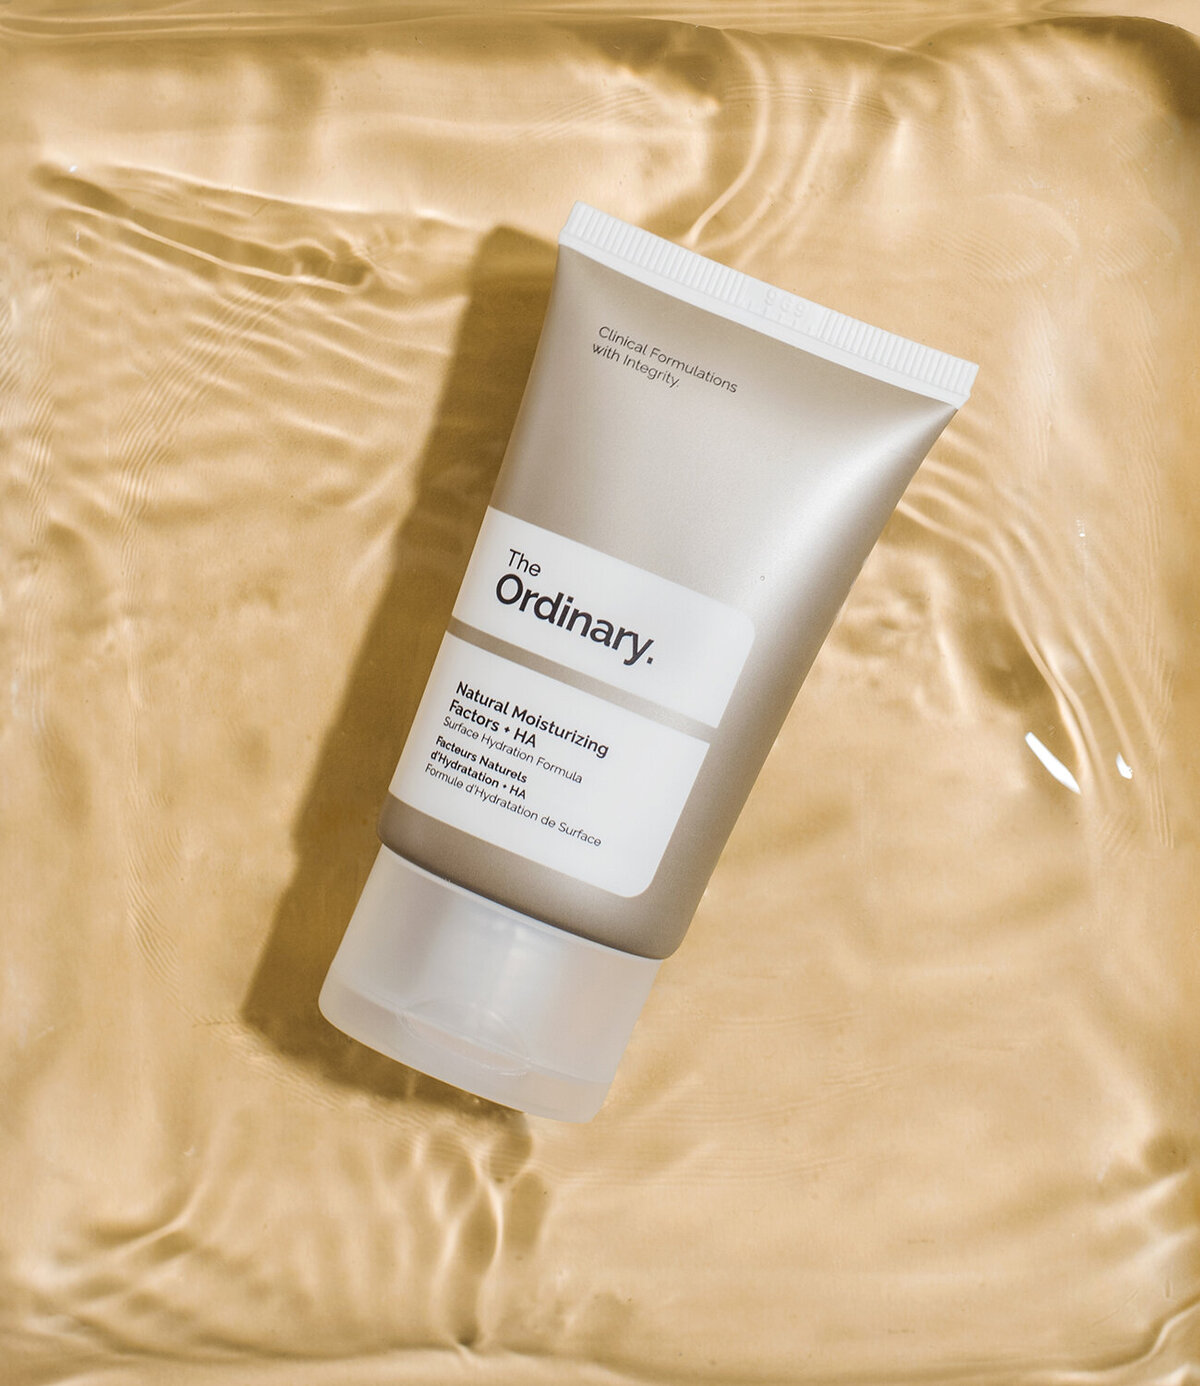 the ordinary moisturizer product photography